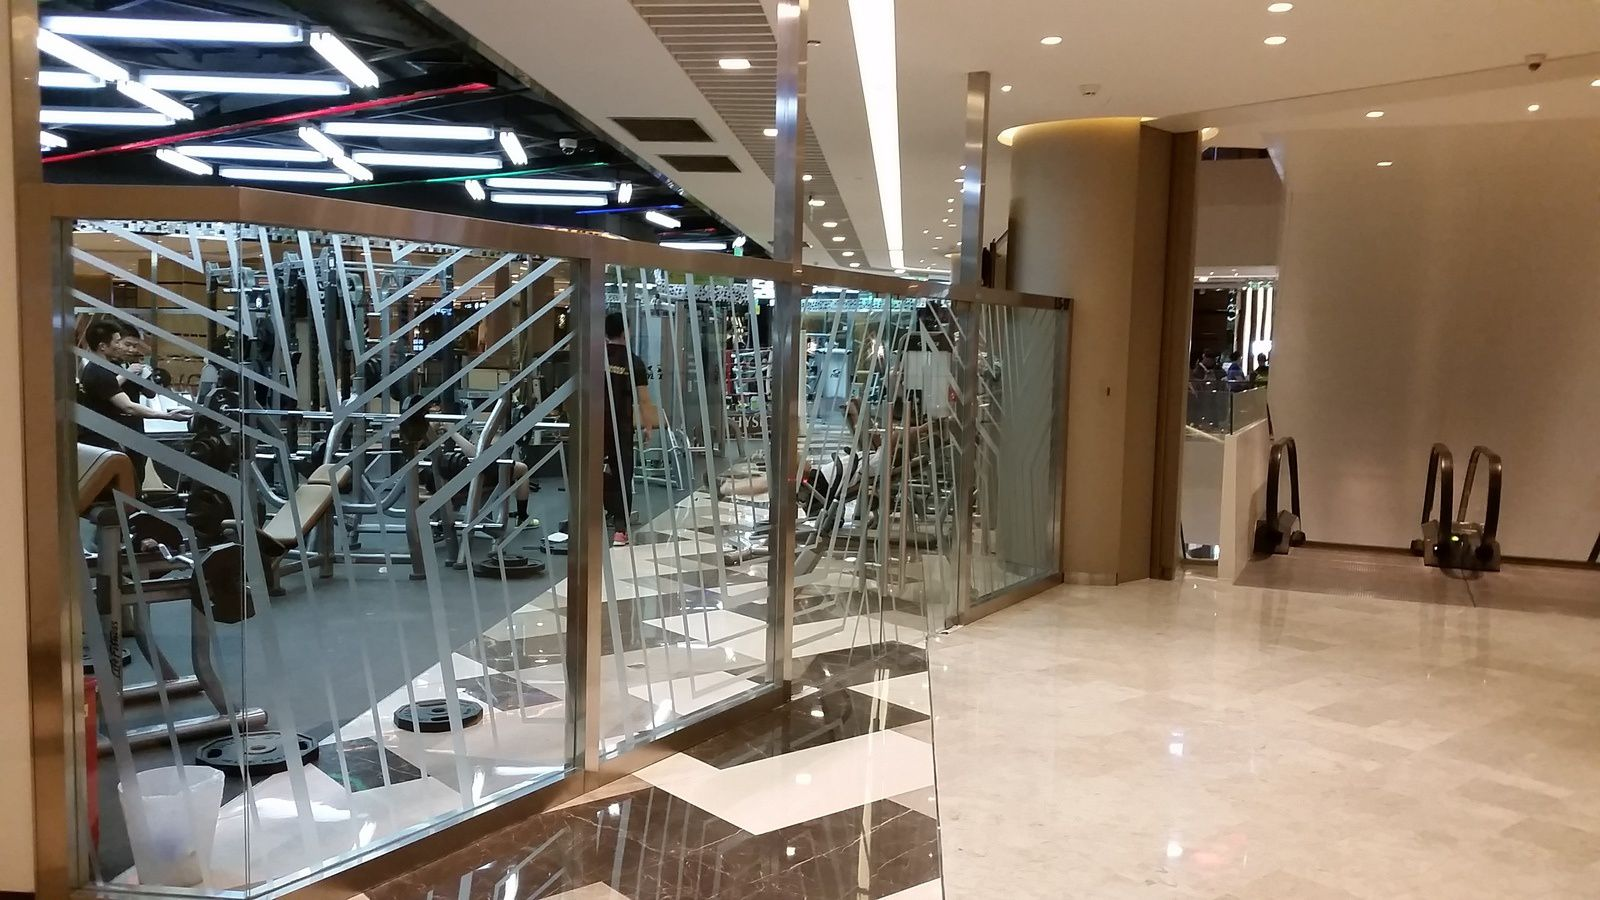 # 2 Best of Shanghai malls : Cristal Mall - stores, mais également restaurants, salles de sports et cabinets médicaux.